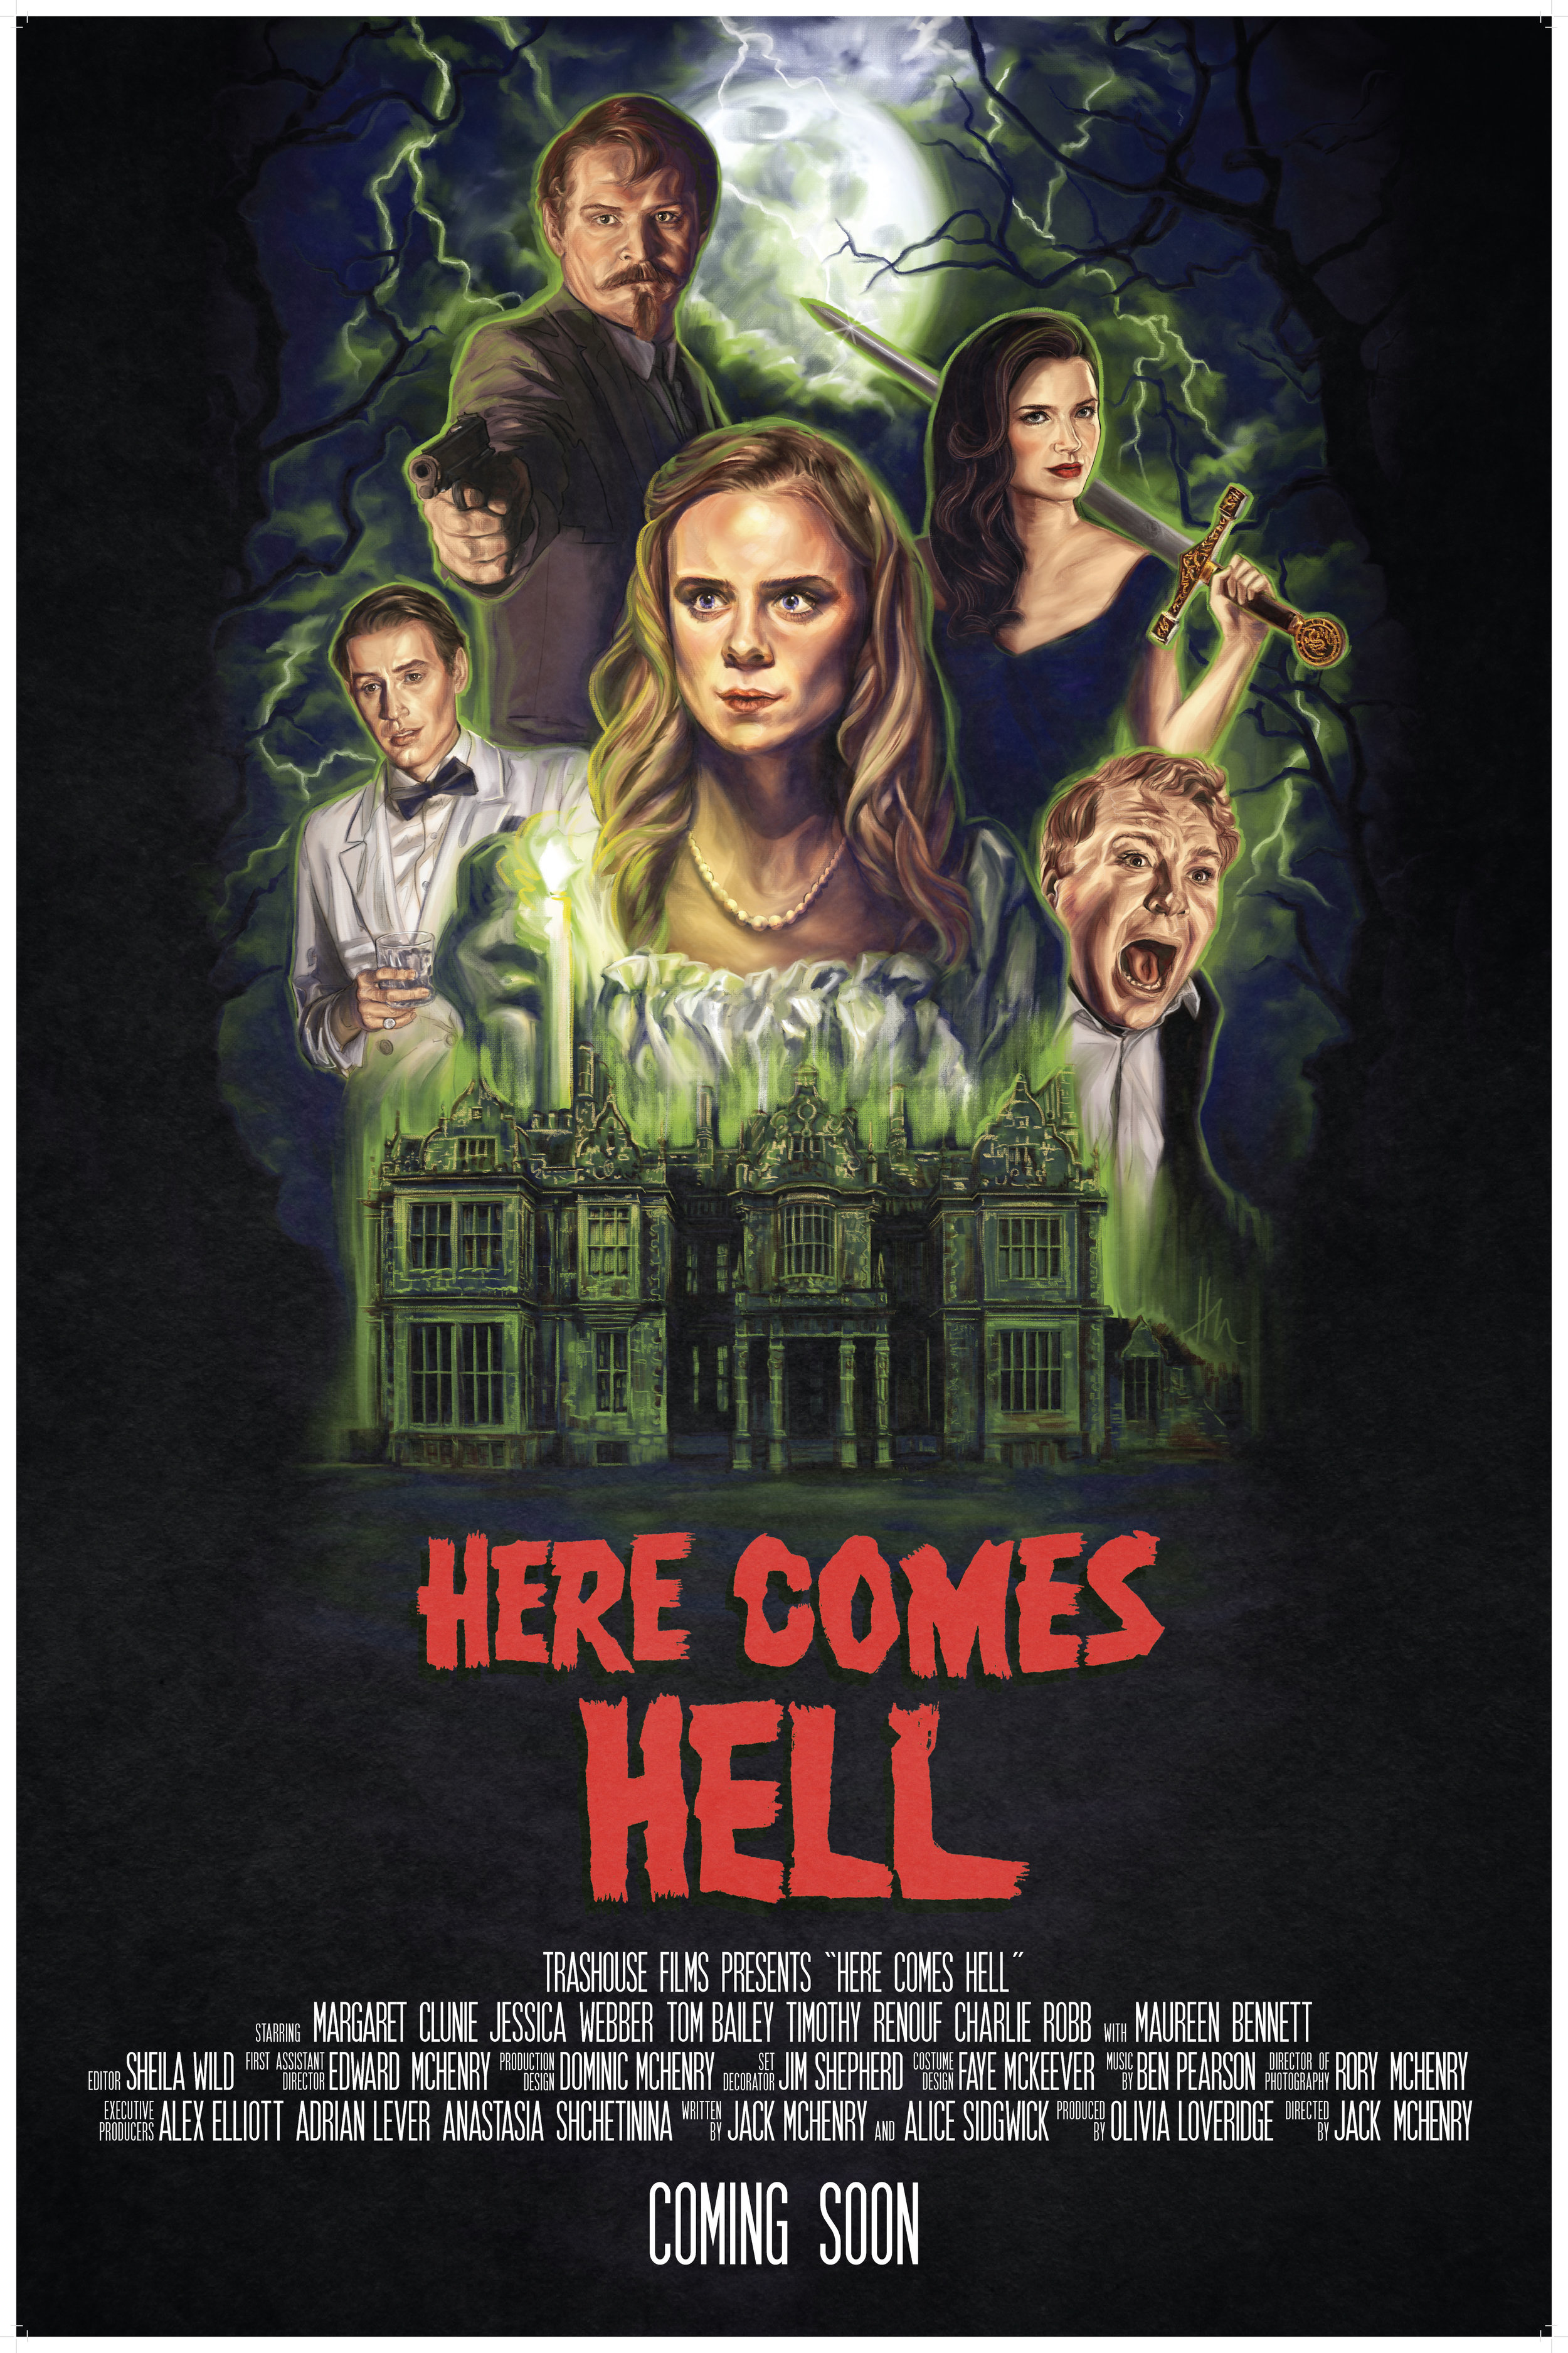 HERE COMES HELL MOVIE POSTER.jpg